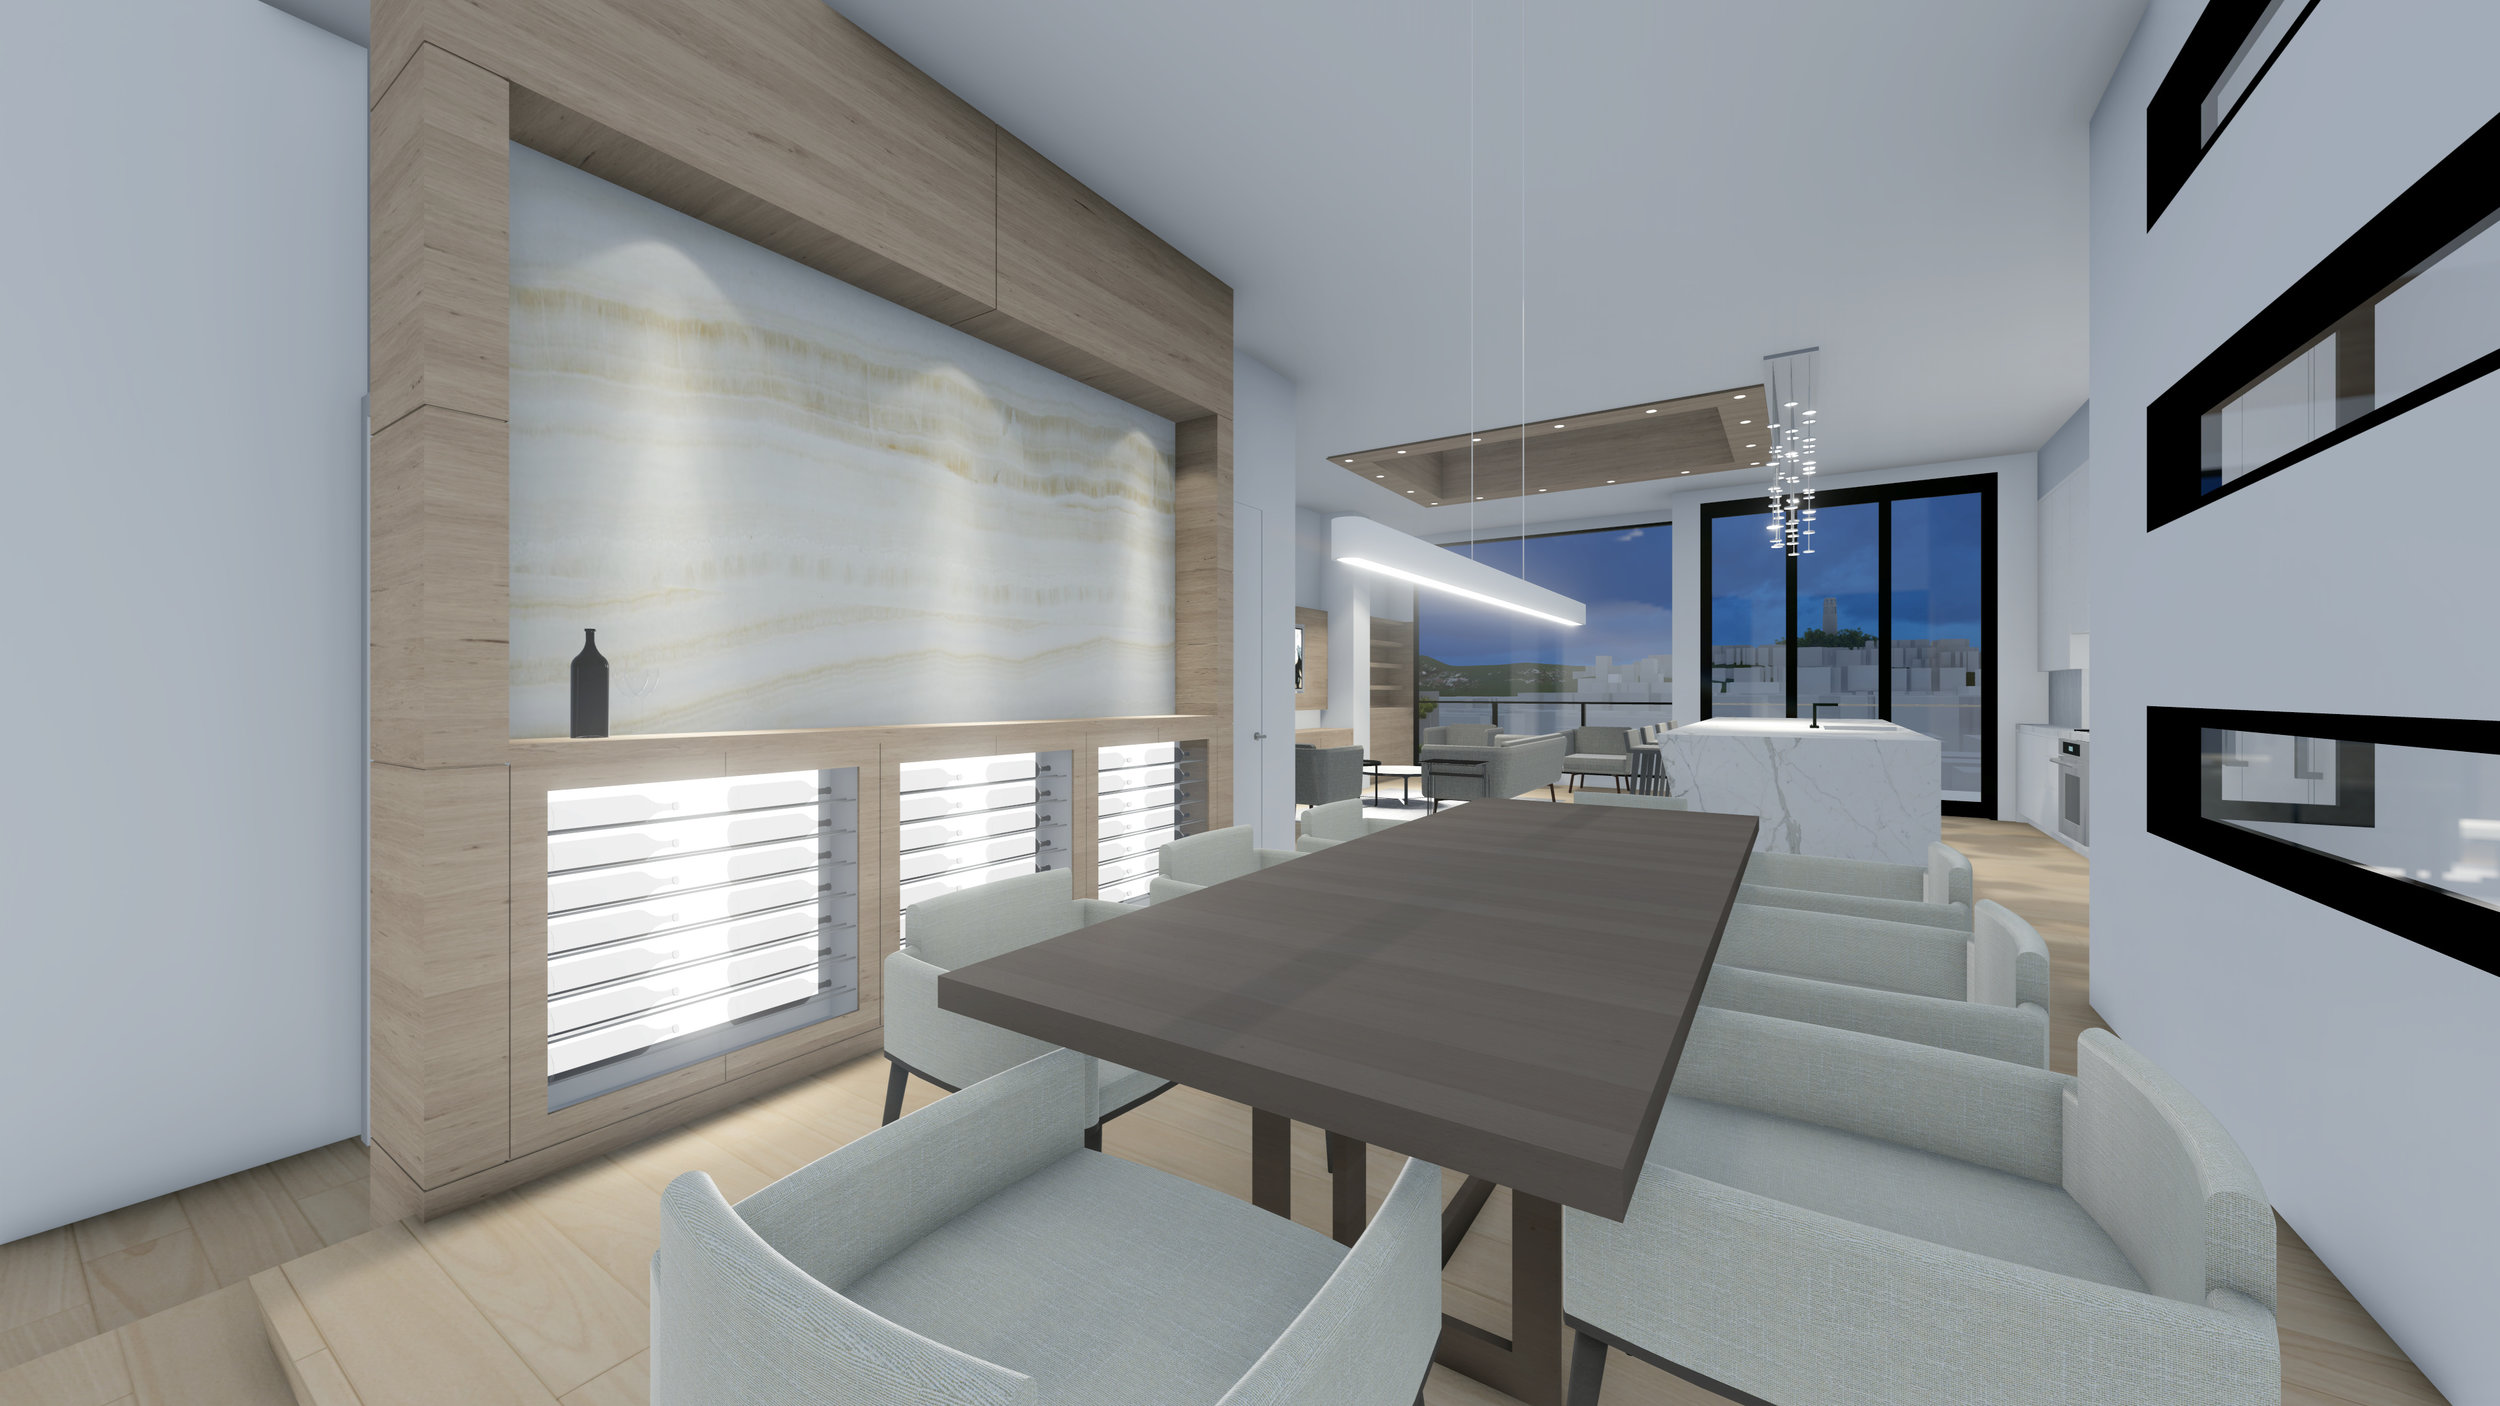 2028-2030 Leavenworth Street - RENDERS - DINING_080217.jpg